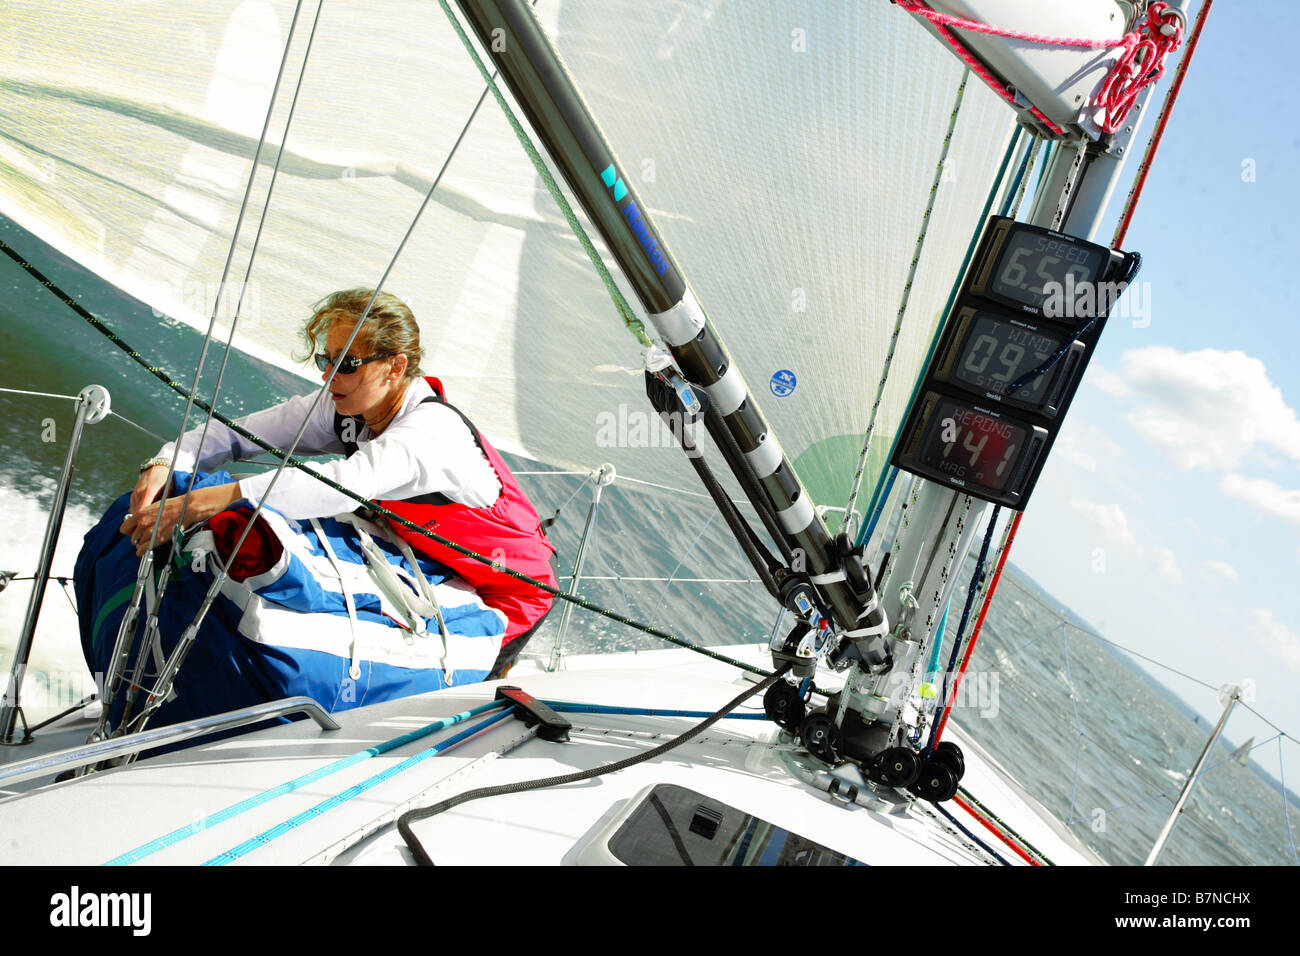 Female sailor stowing a sail on a Yacht in the Solent, UK. - Stock Image